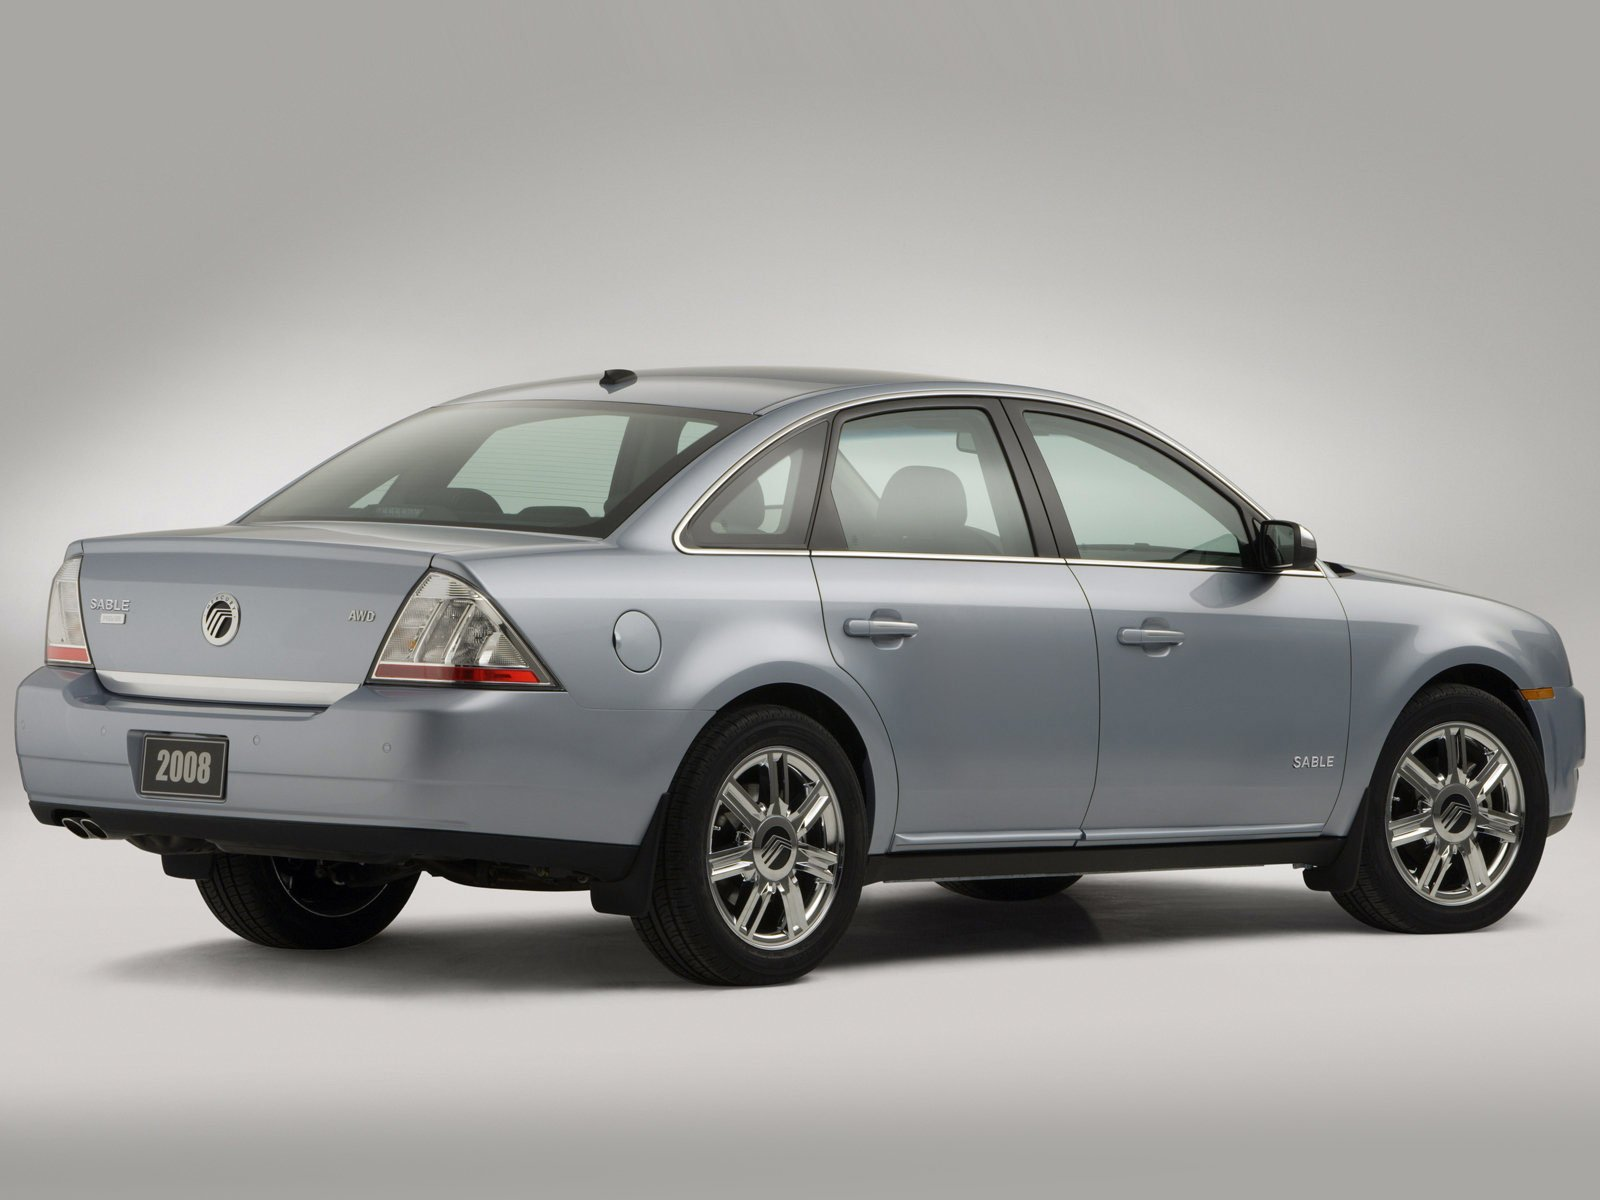 Latest 2008 Mercury Sable Car Accident Lawyers Wallpaper Free Download